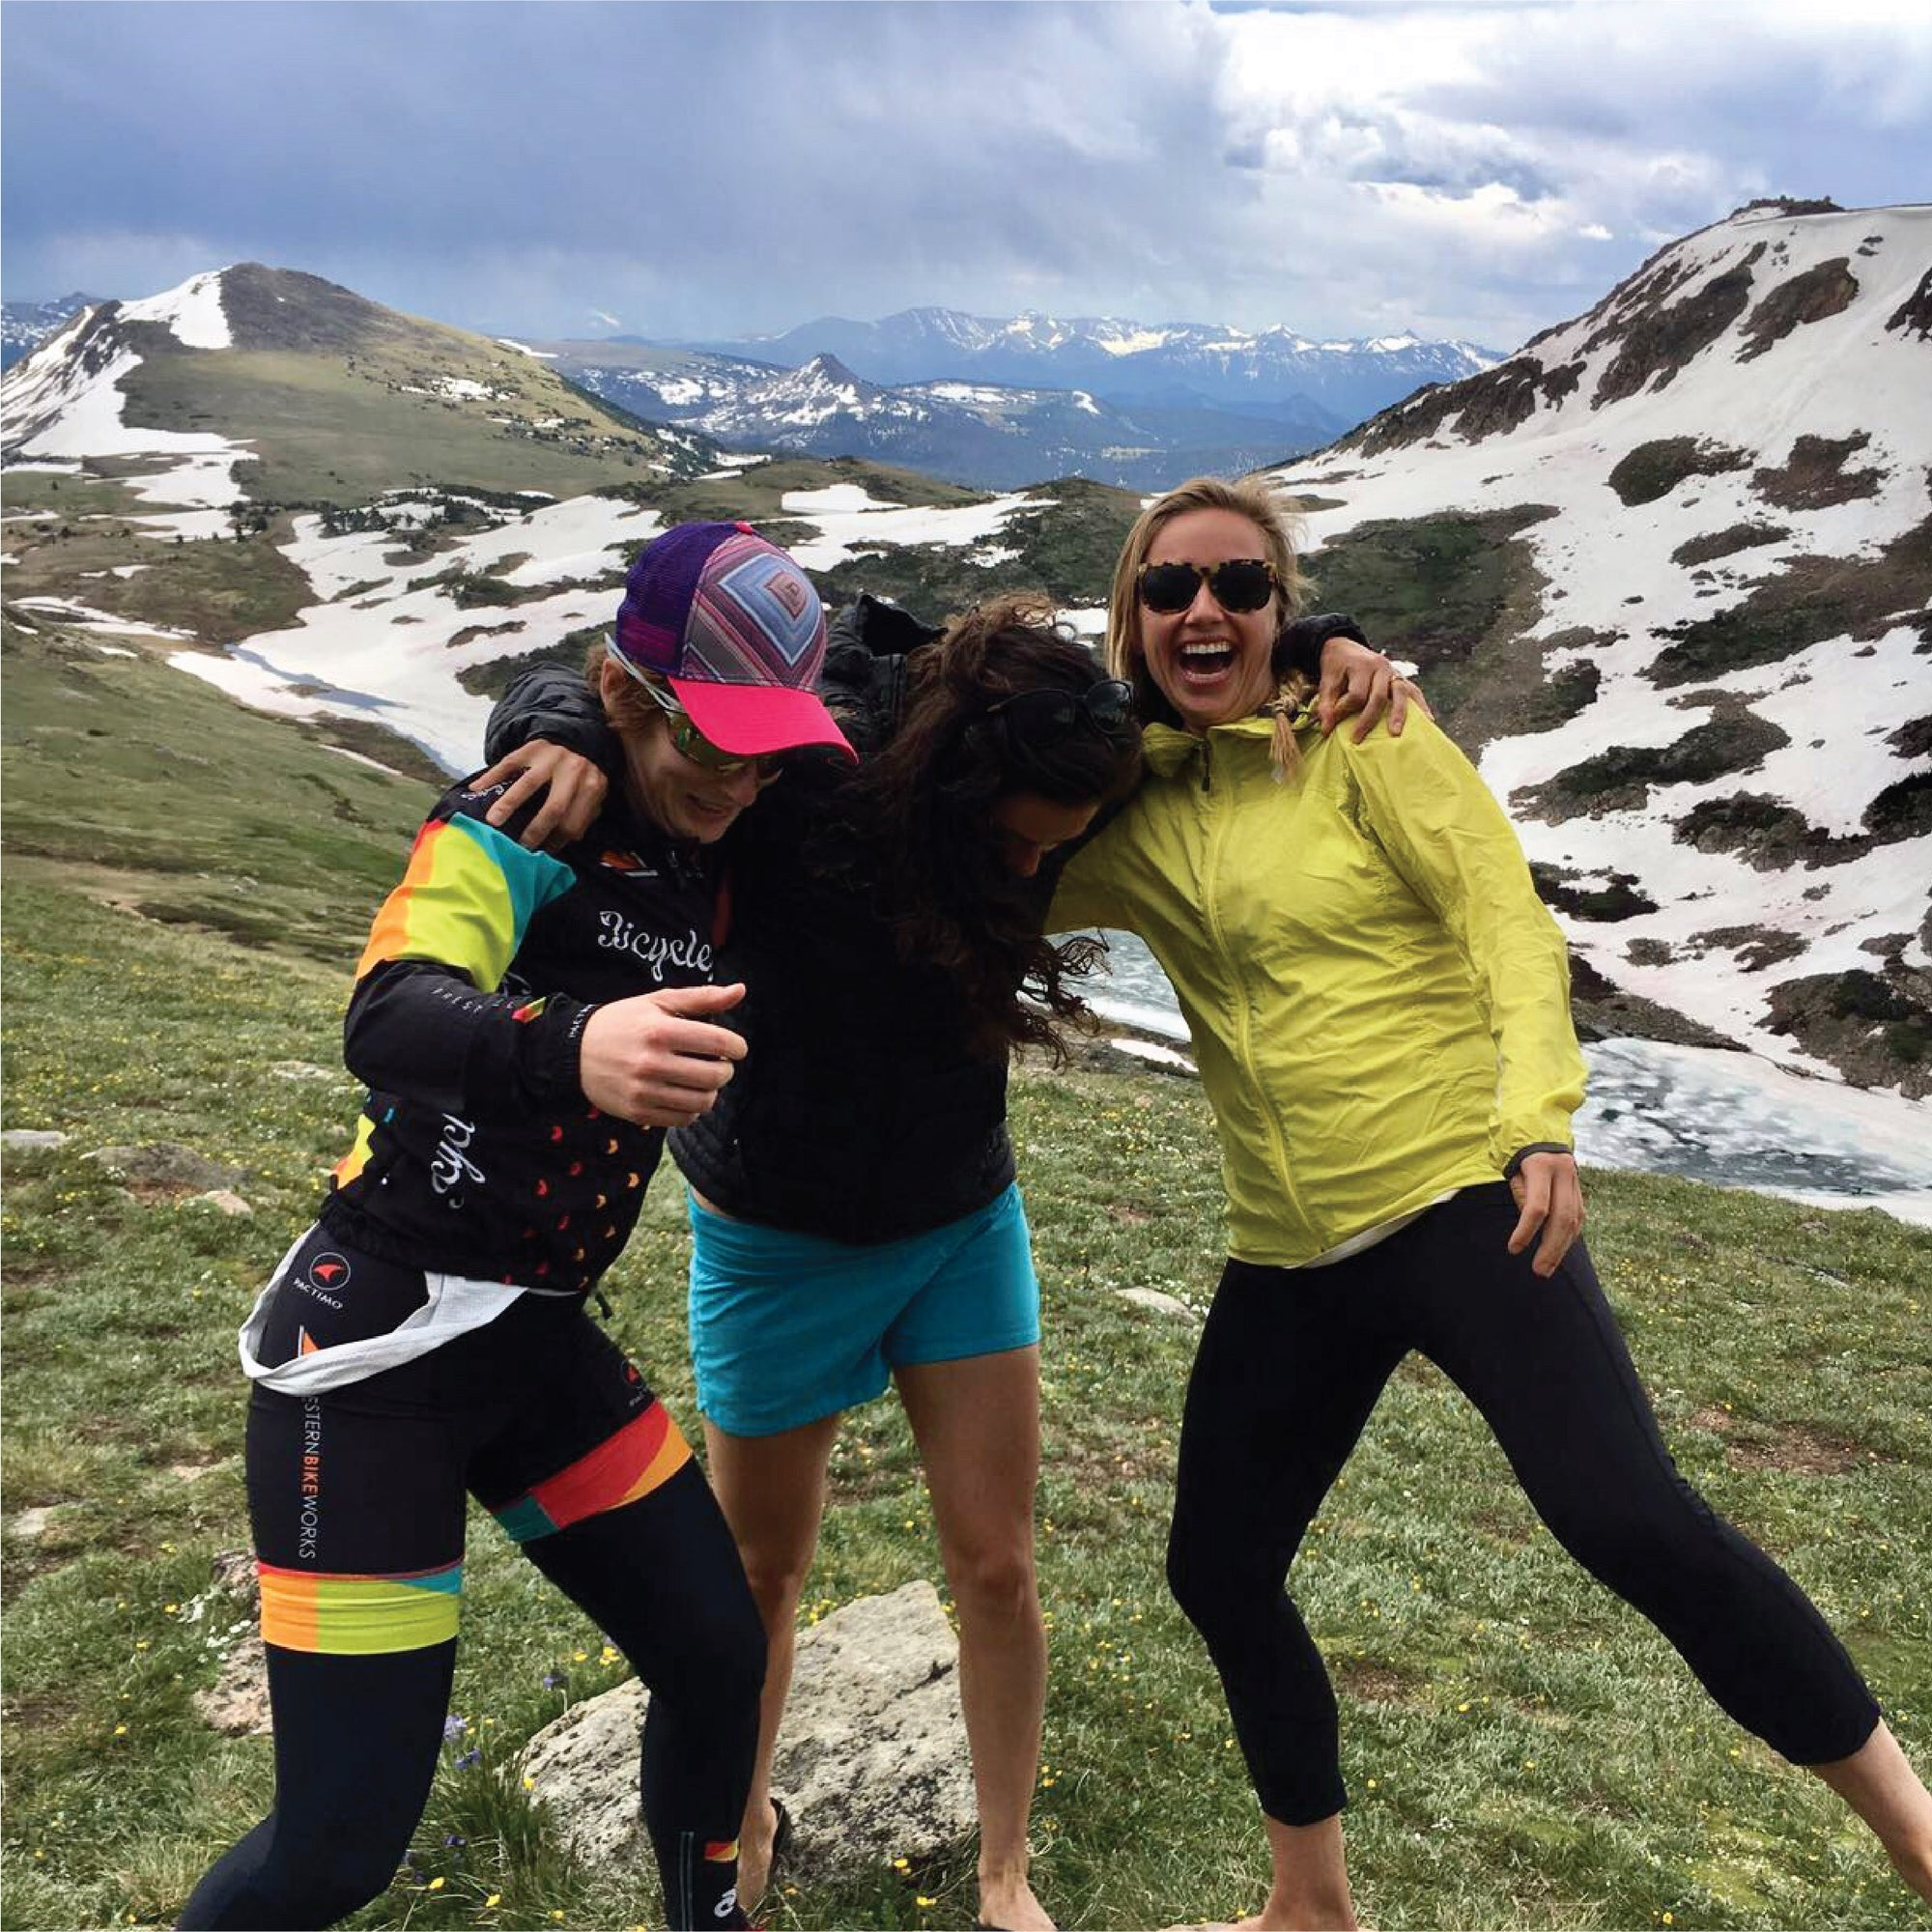 Three women smiling and having fun after cycling adventure